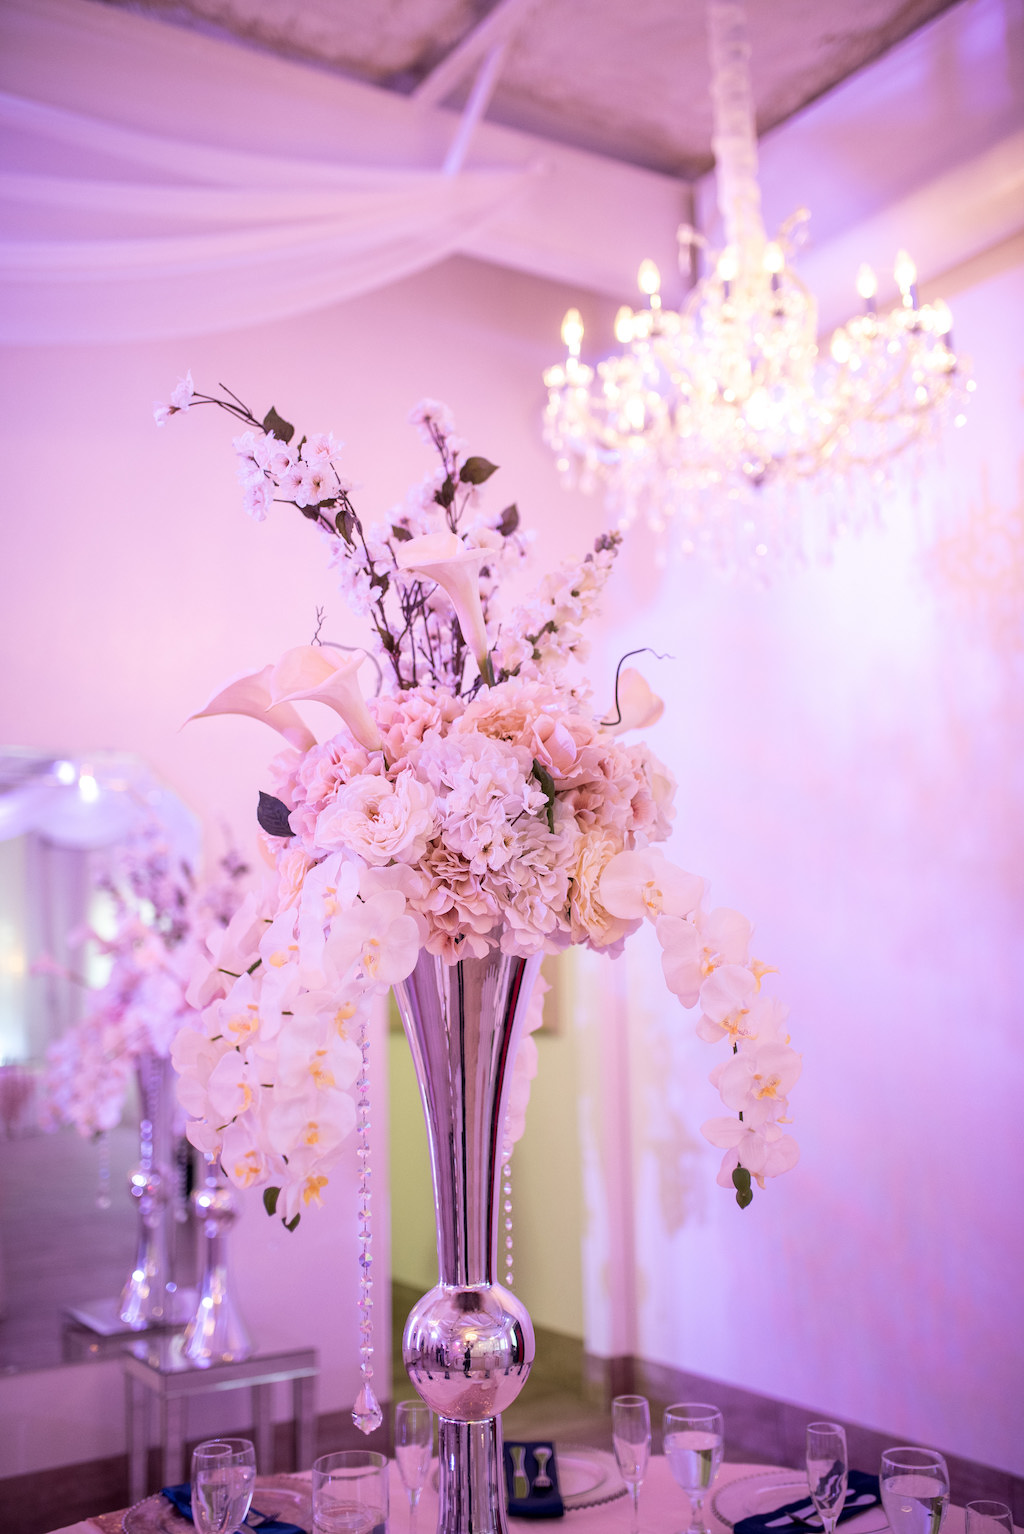 Elegant Indoor Wedding Reception Decor Tall Silver Vase With White Orchids Cala Lillies And Hanging Crystals Centerpiece And Pink Uplighting Marry Me Tampa Bay Local Real Wedding Inspiration Vendor